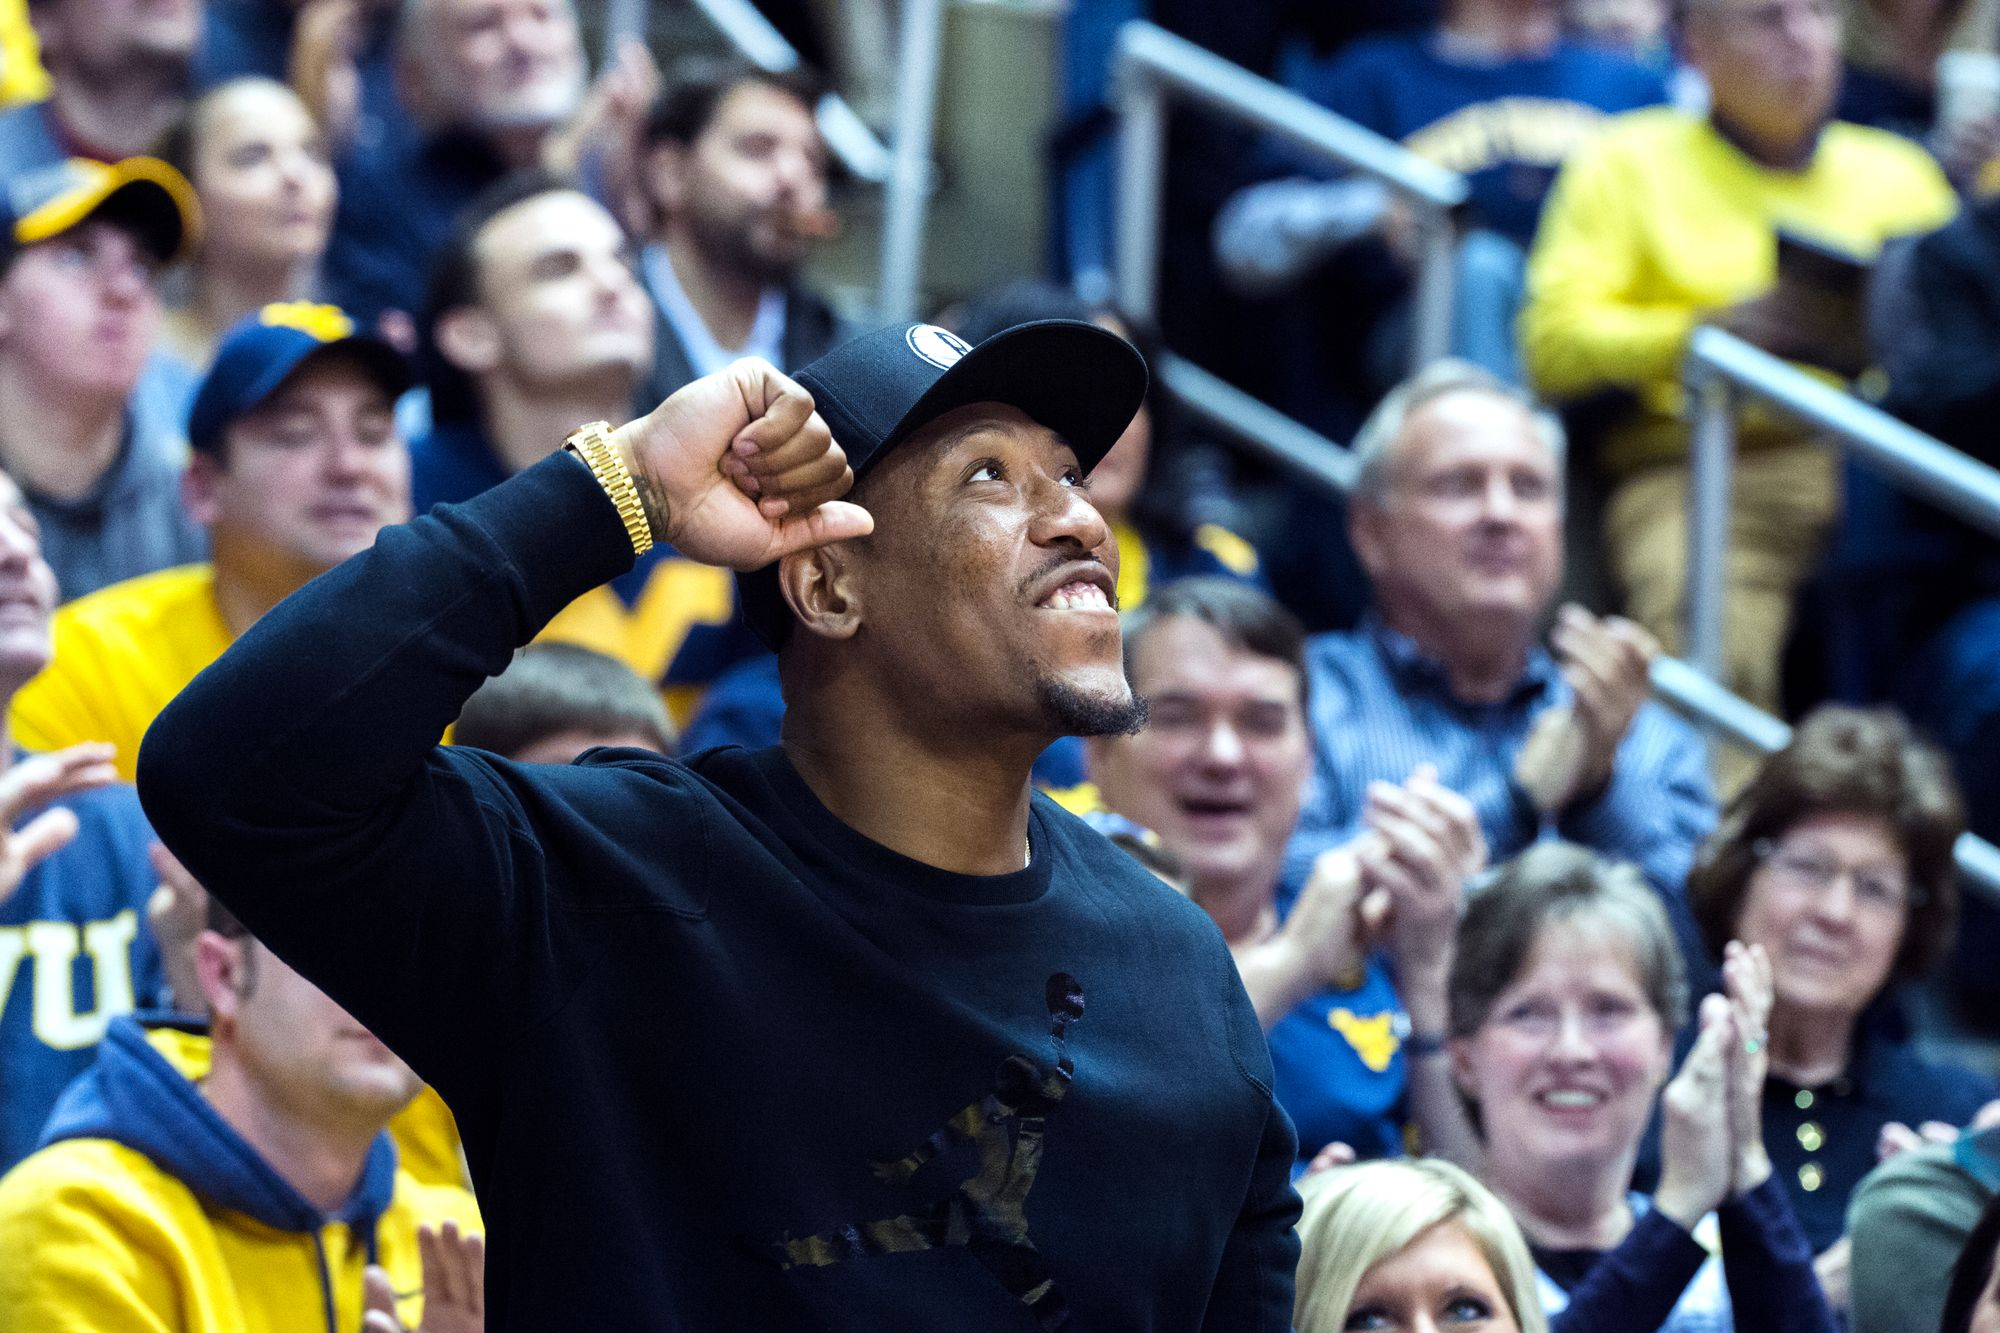 Bruce Irvin attends a WVU basketball game.